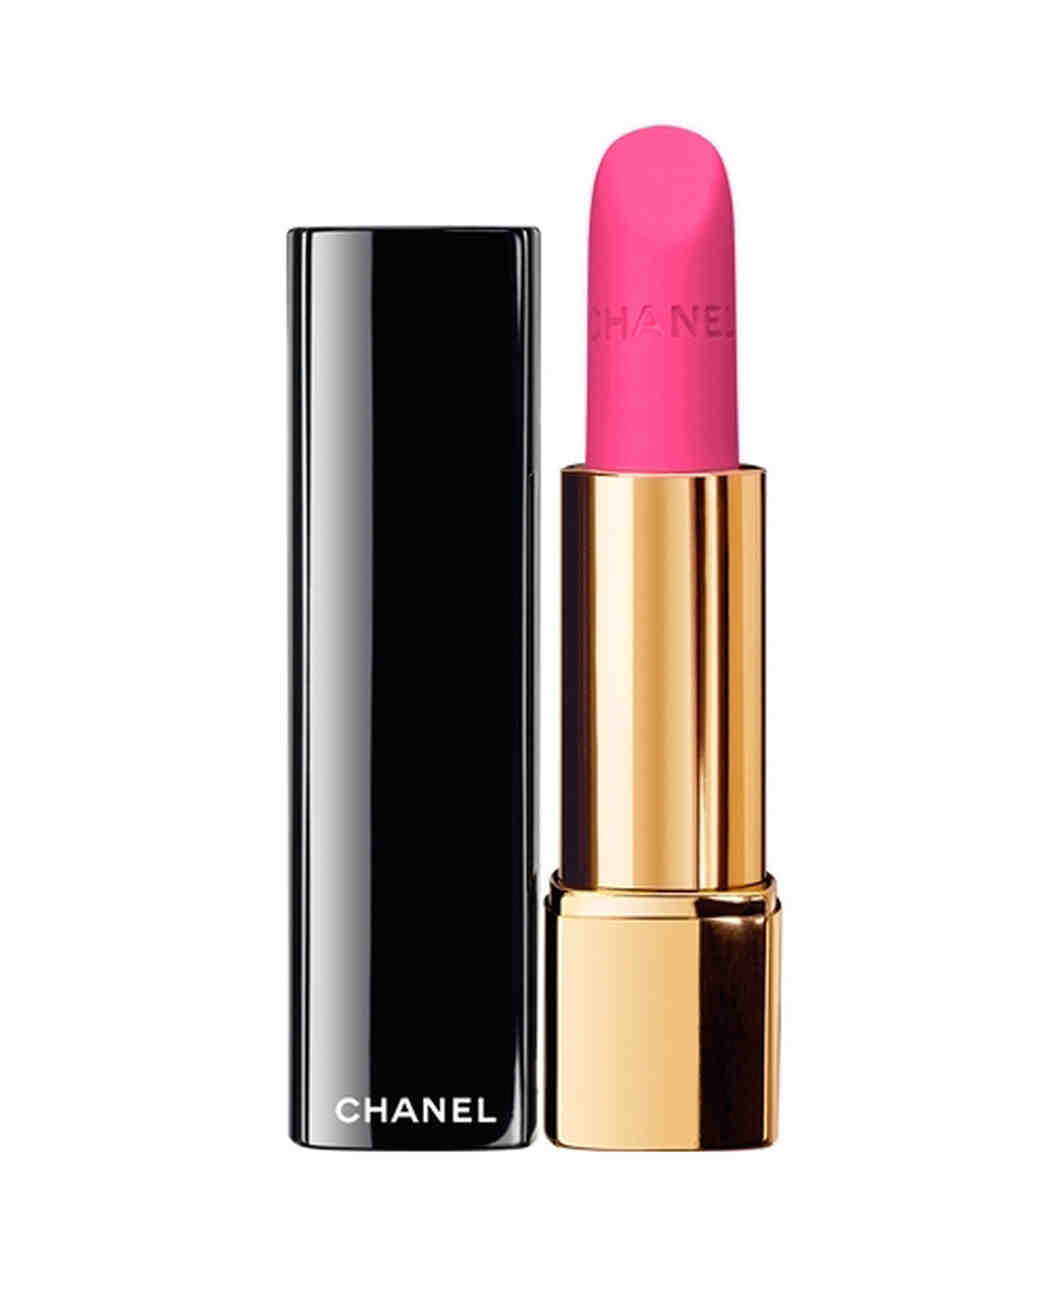 matte-lipsticks-chanel-rouge-allure-velvet-0915.jpg